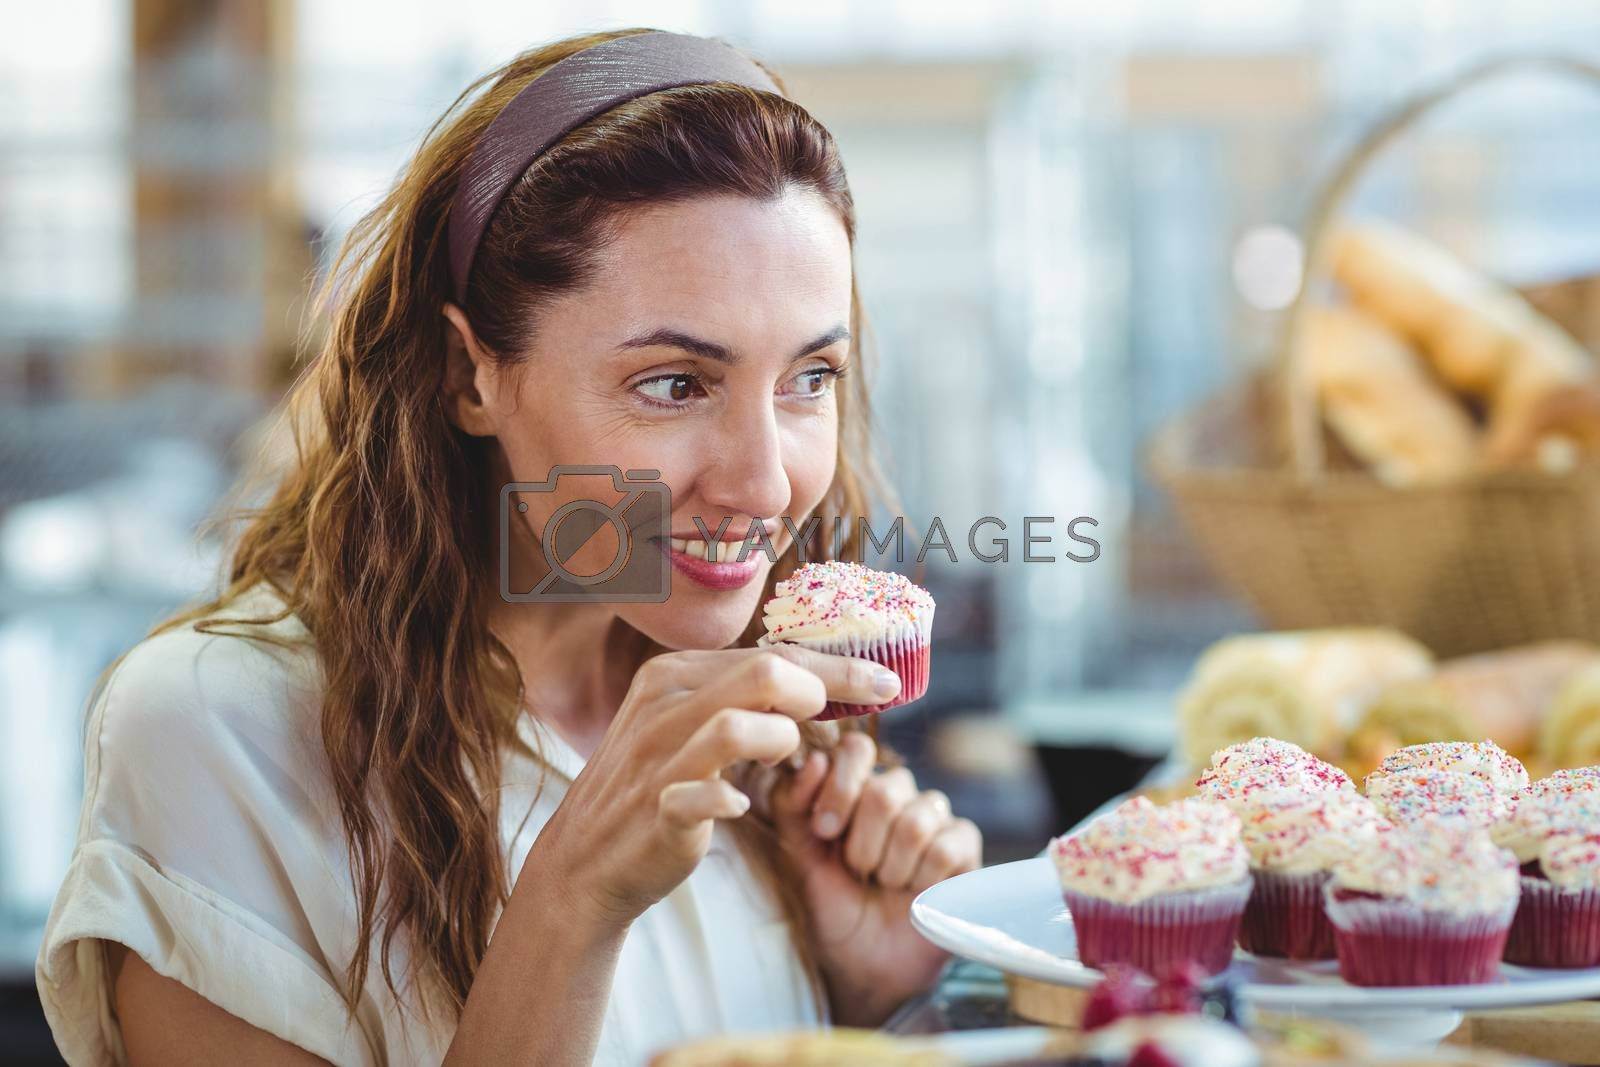 Royalty free image of Pretty brunette holding and smelling cupcake by Wavebreakmedia